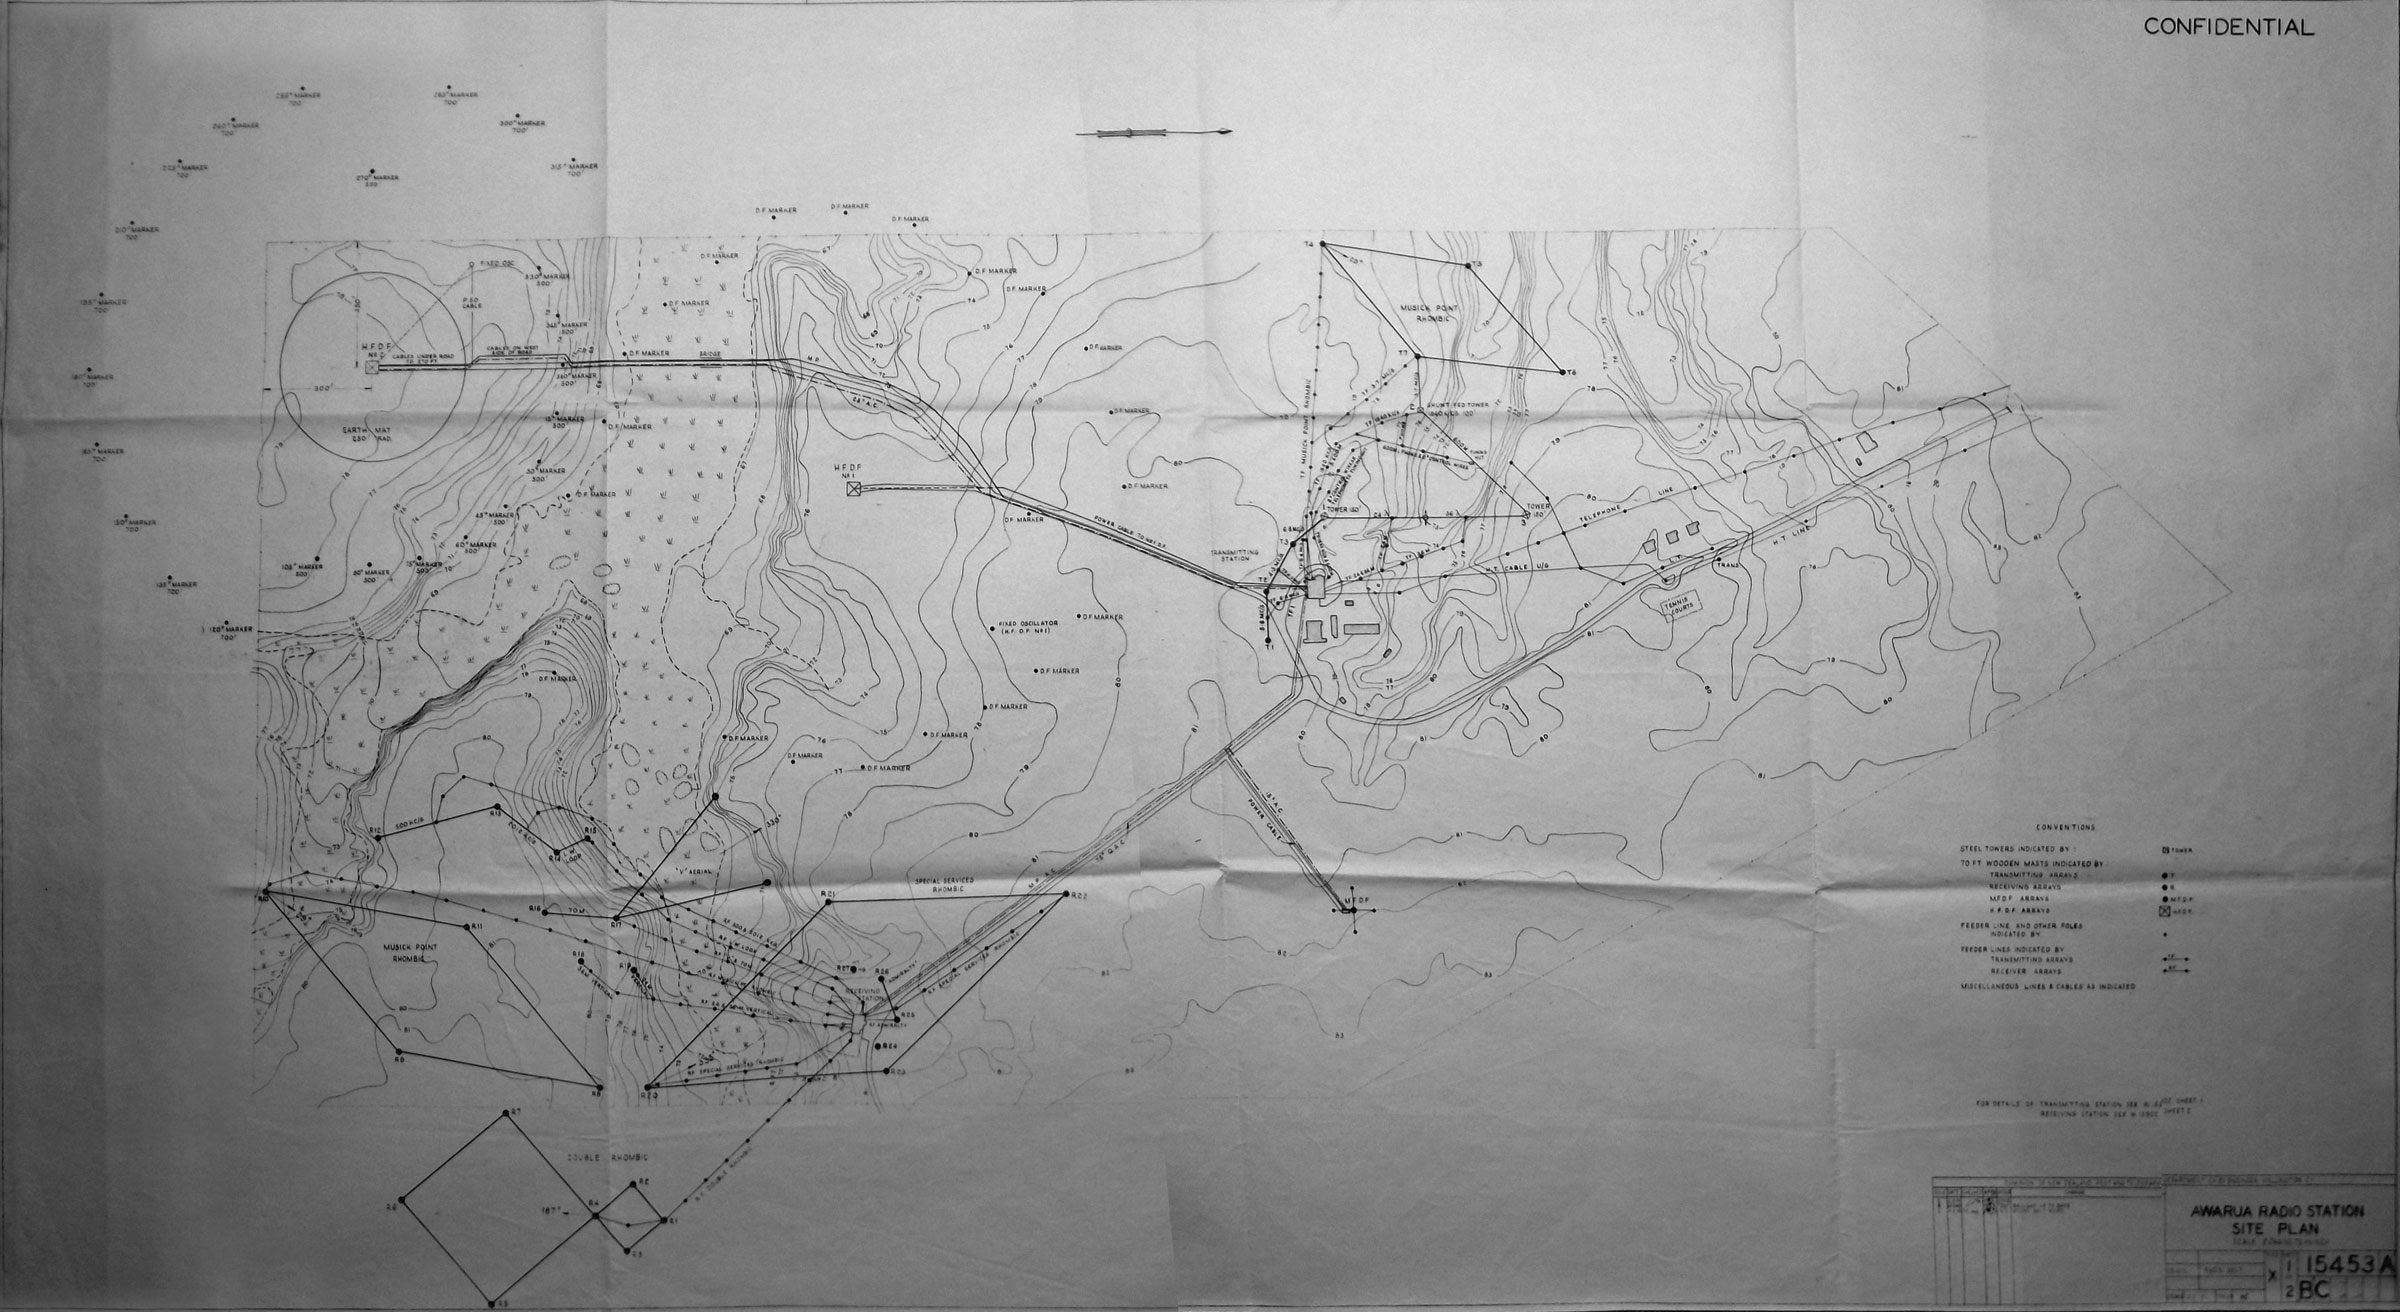 1945 aerial plan for Awarua Radio